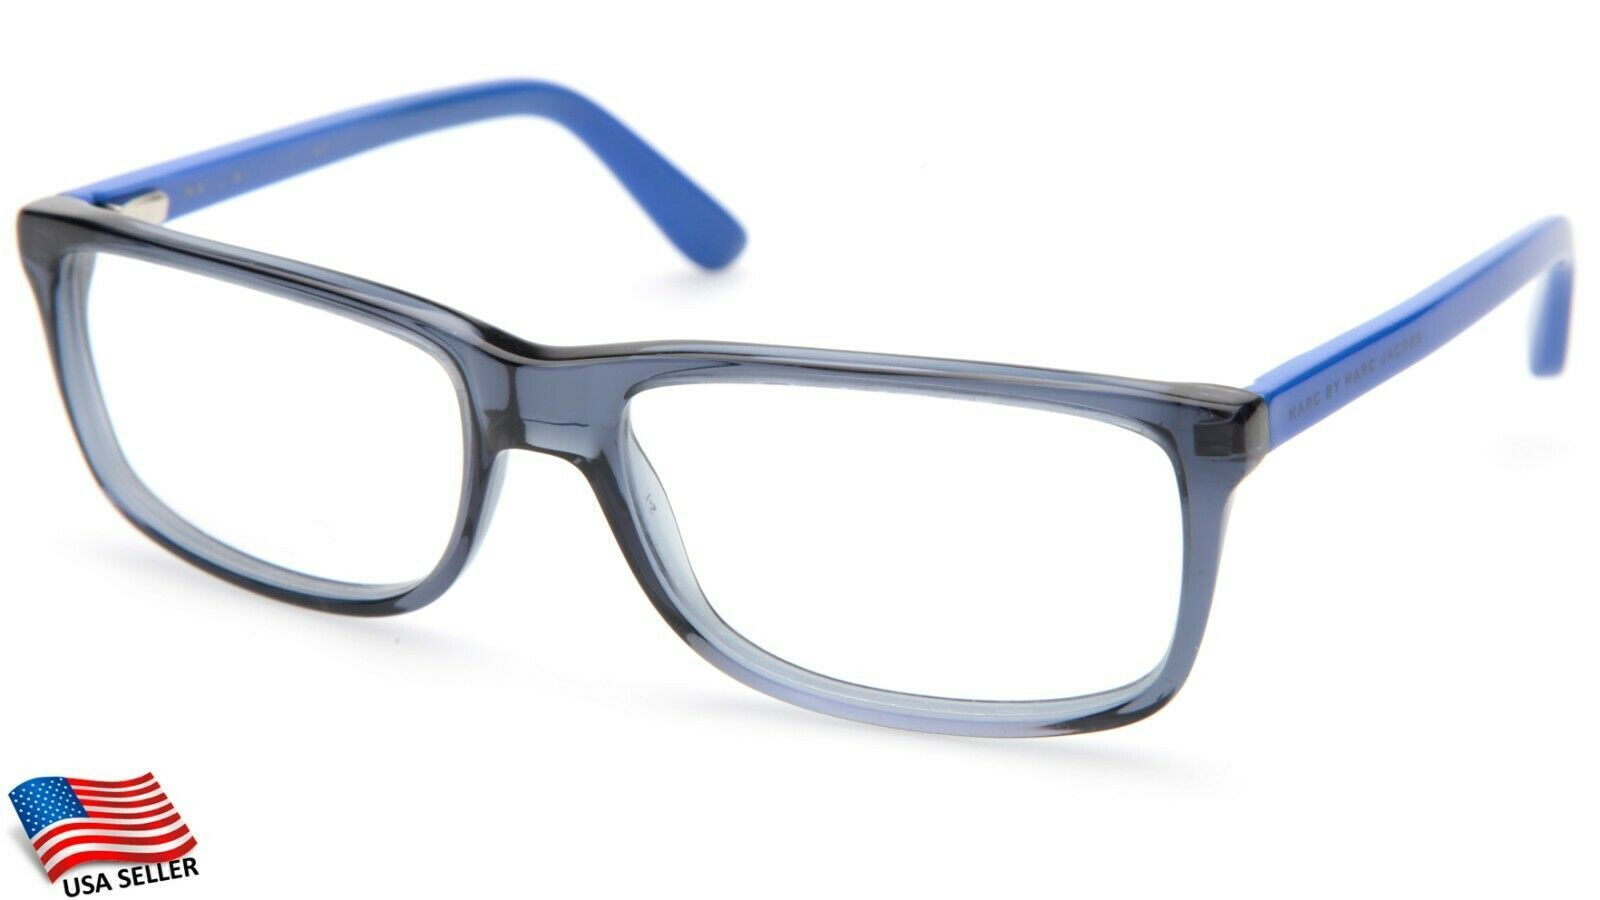 Primary image for MARC BY MARC JACOBS MMJ513 7P1 SMOKE BLUE EYEGLASSES FRAME 54-18-140mm